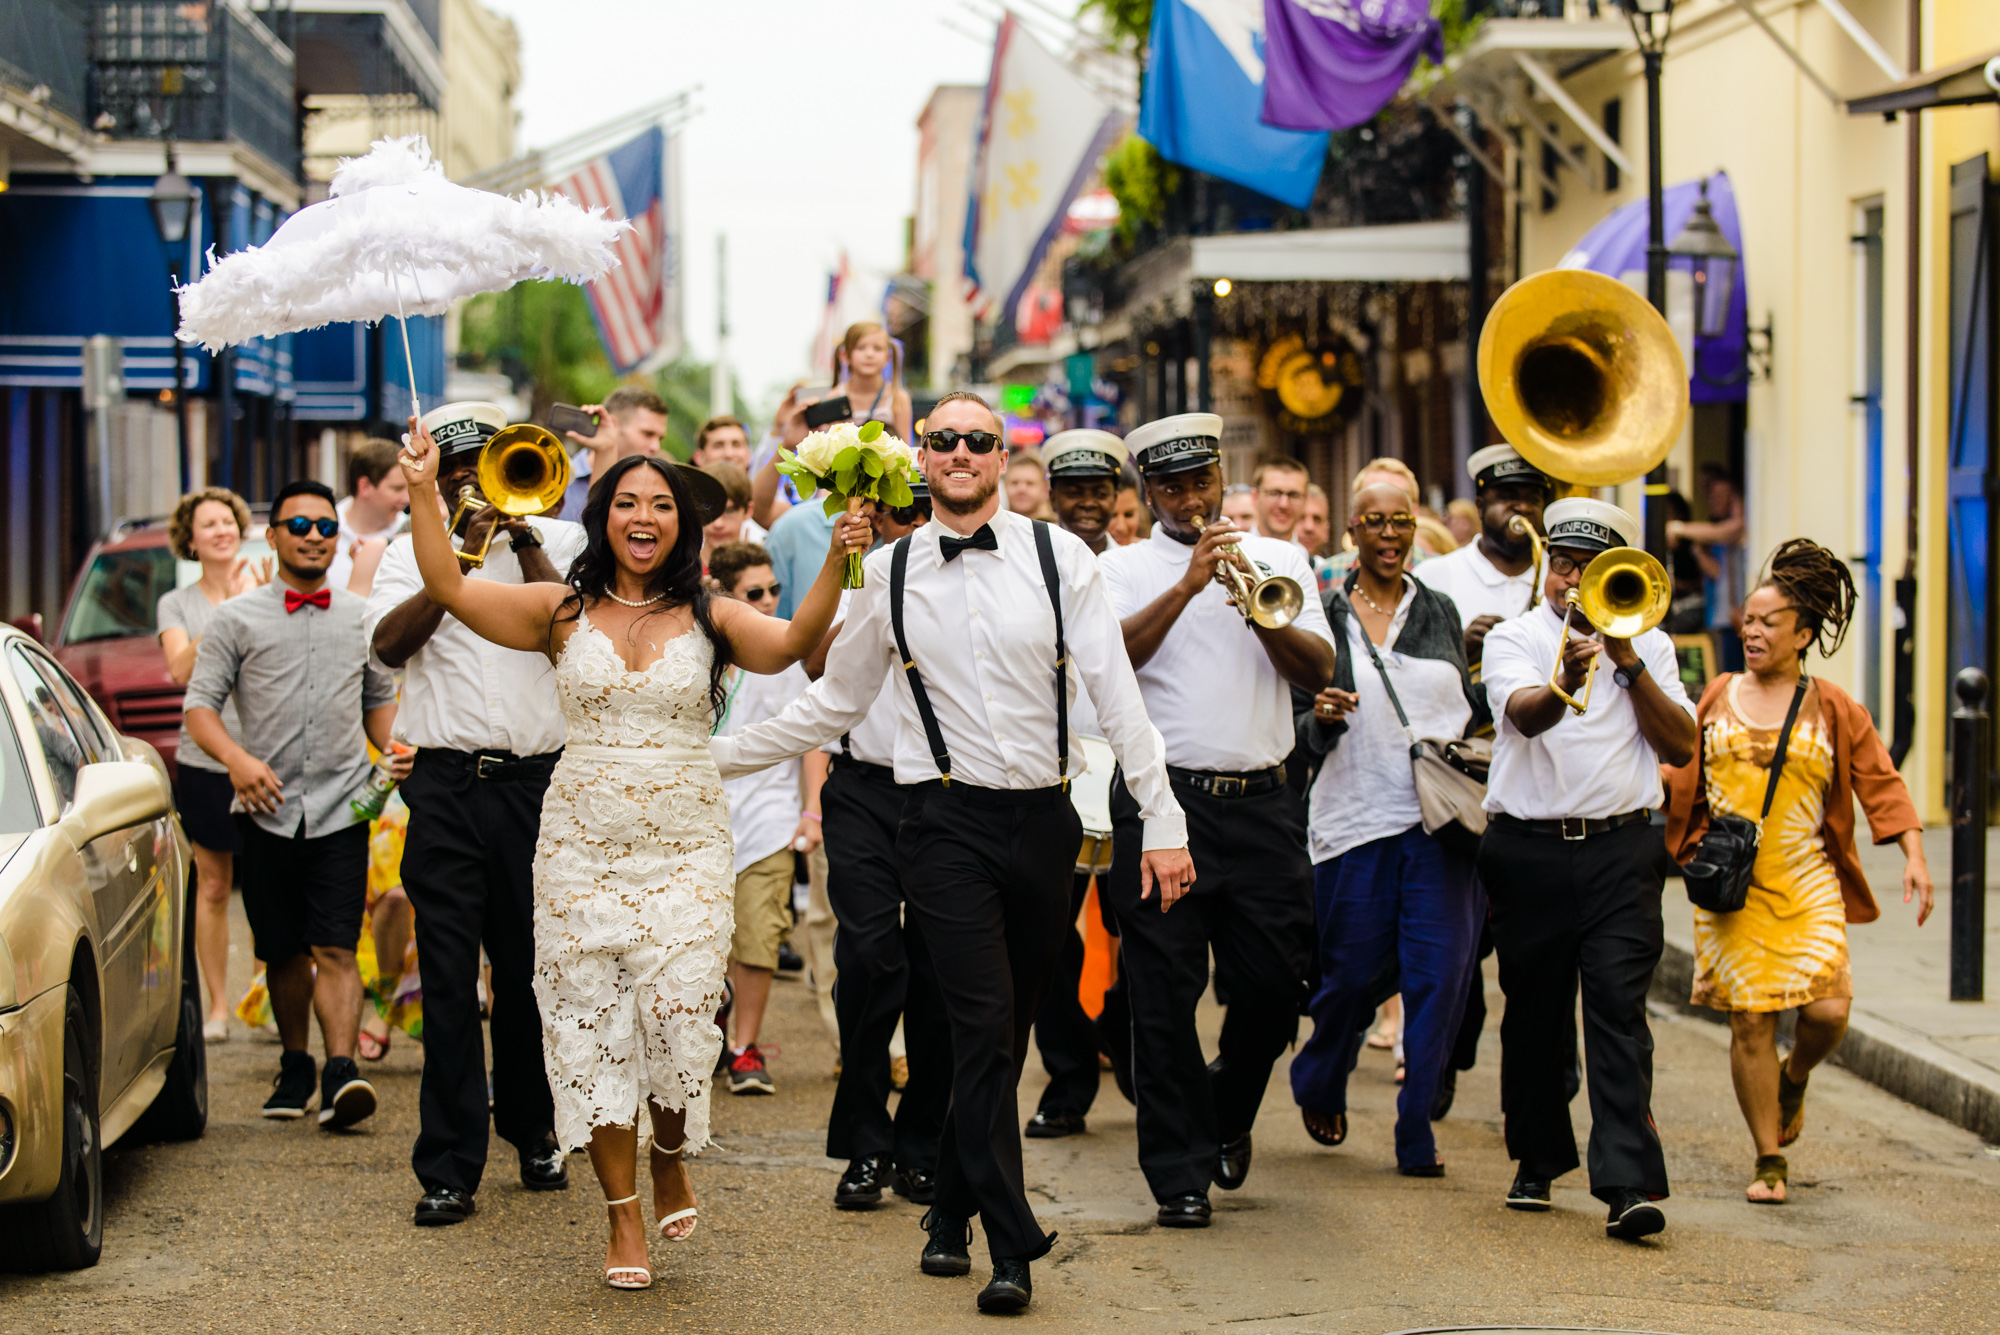 A New Orleans wedding second line parade